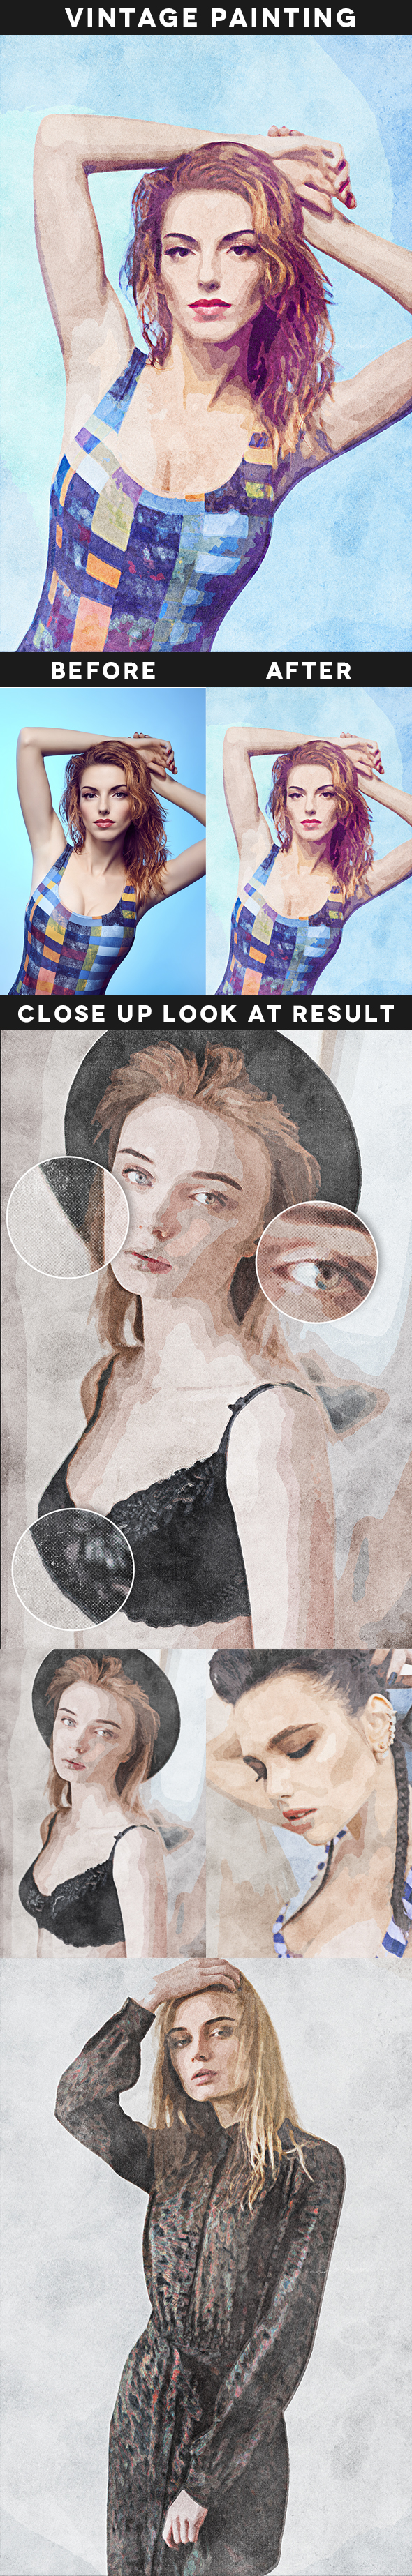 GraphicRiver Vintage Painting Action 20607588